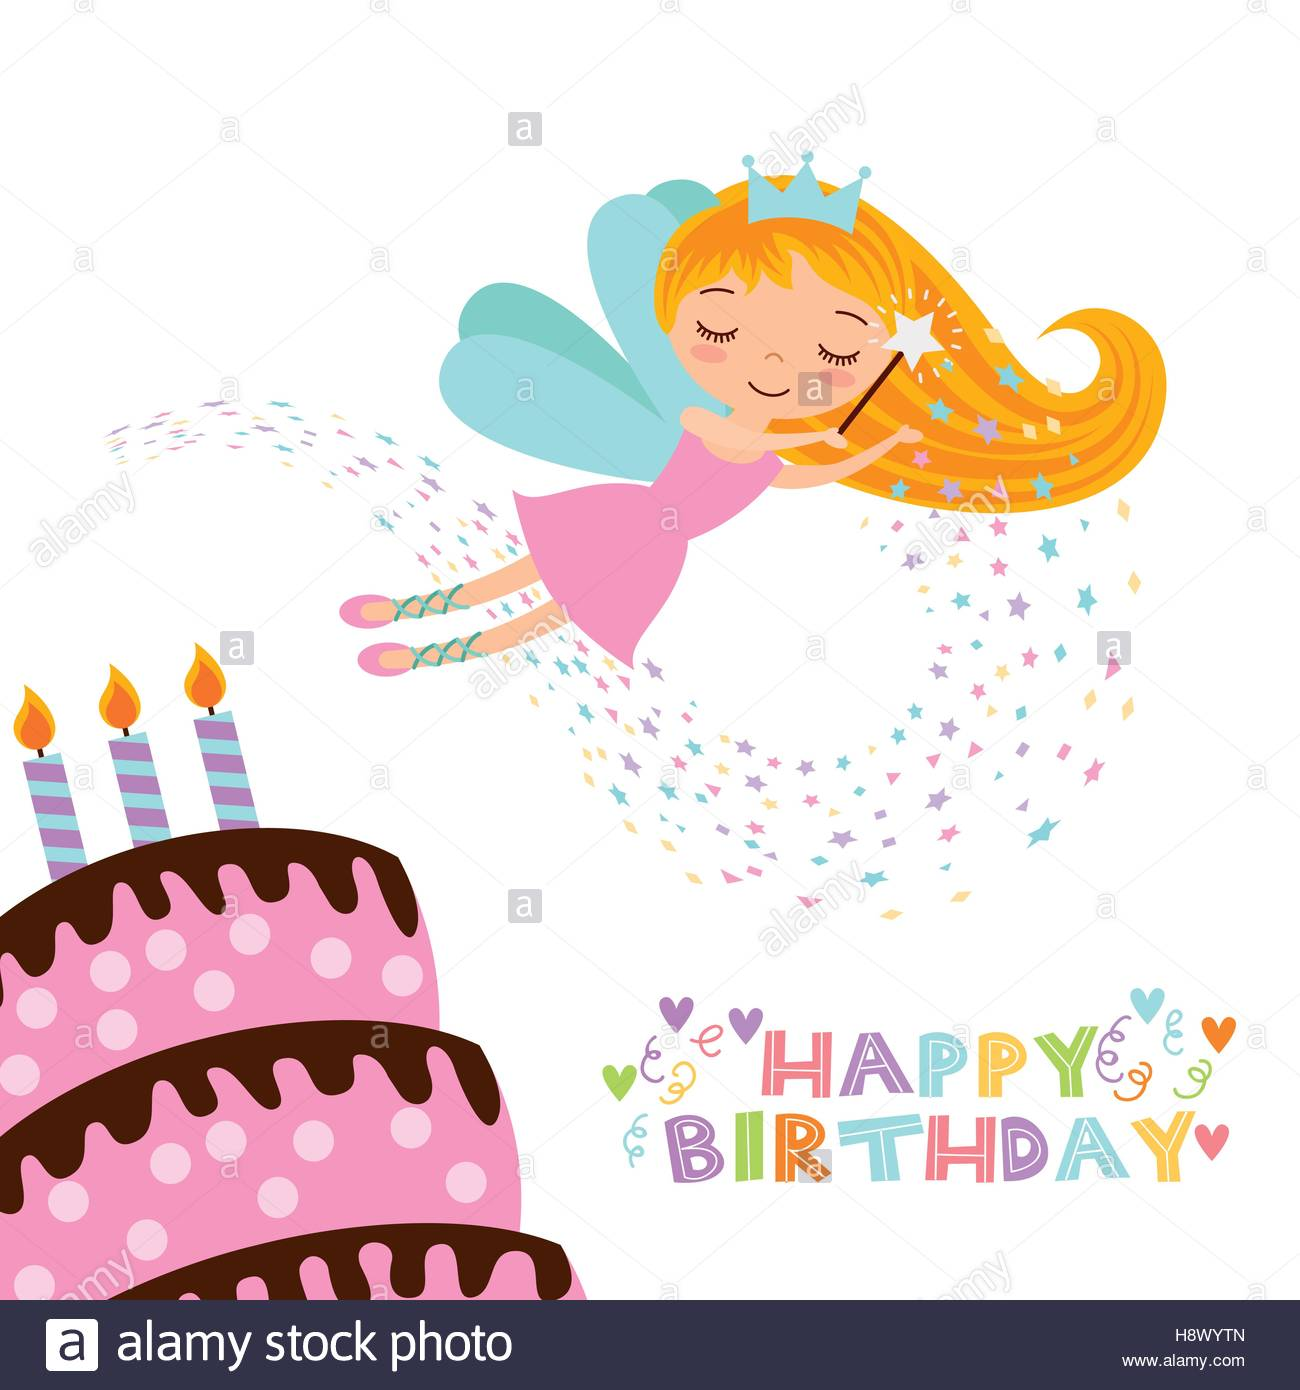 1300x1390 Happy Birthday Card With Cute Fairy Girl And Cake With Candles